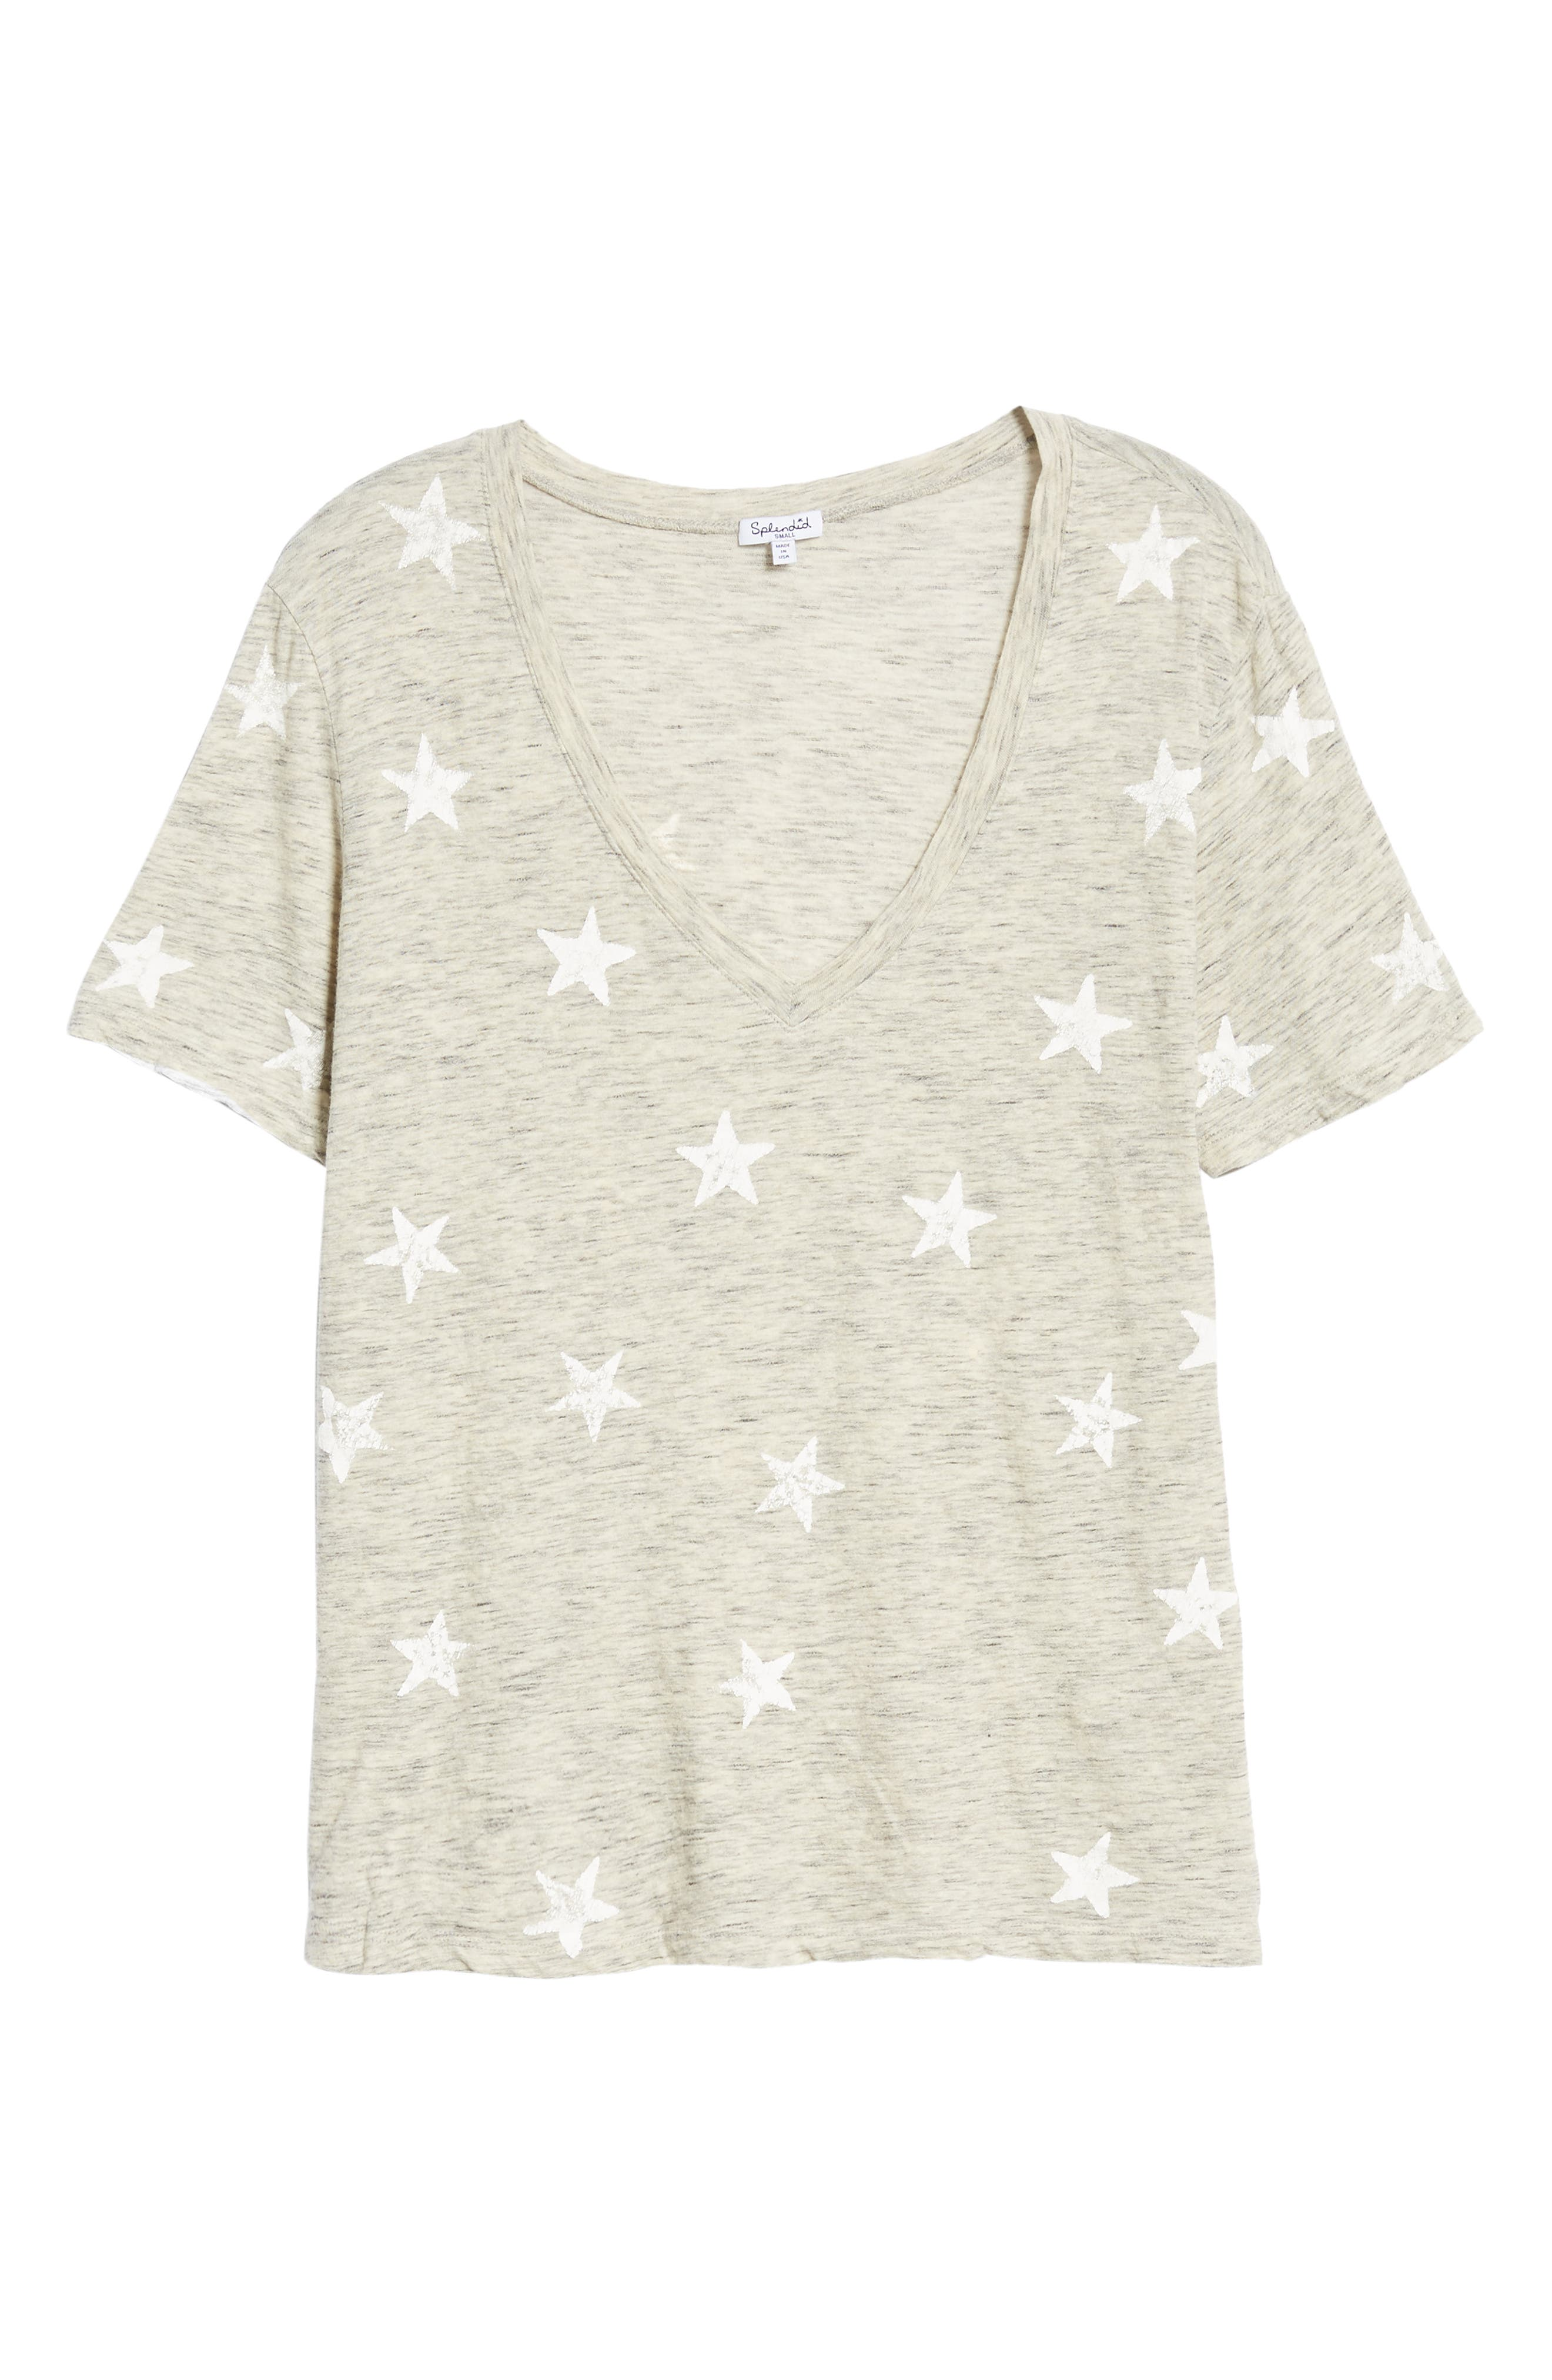 Star Tee,                             Alternate thumbnail 6, color,                             020